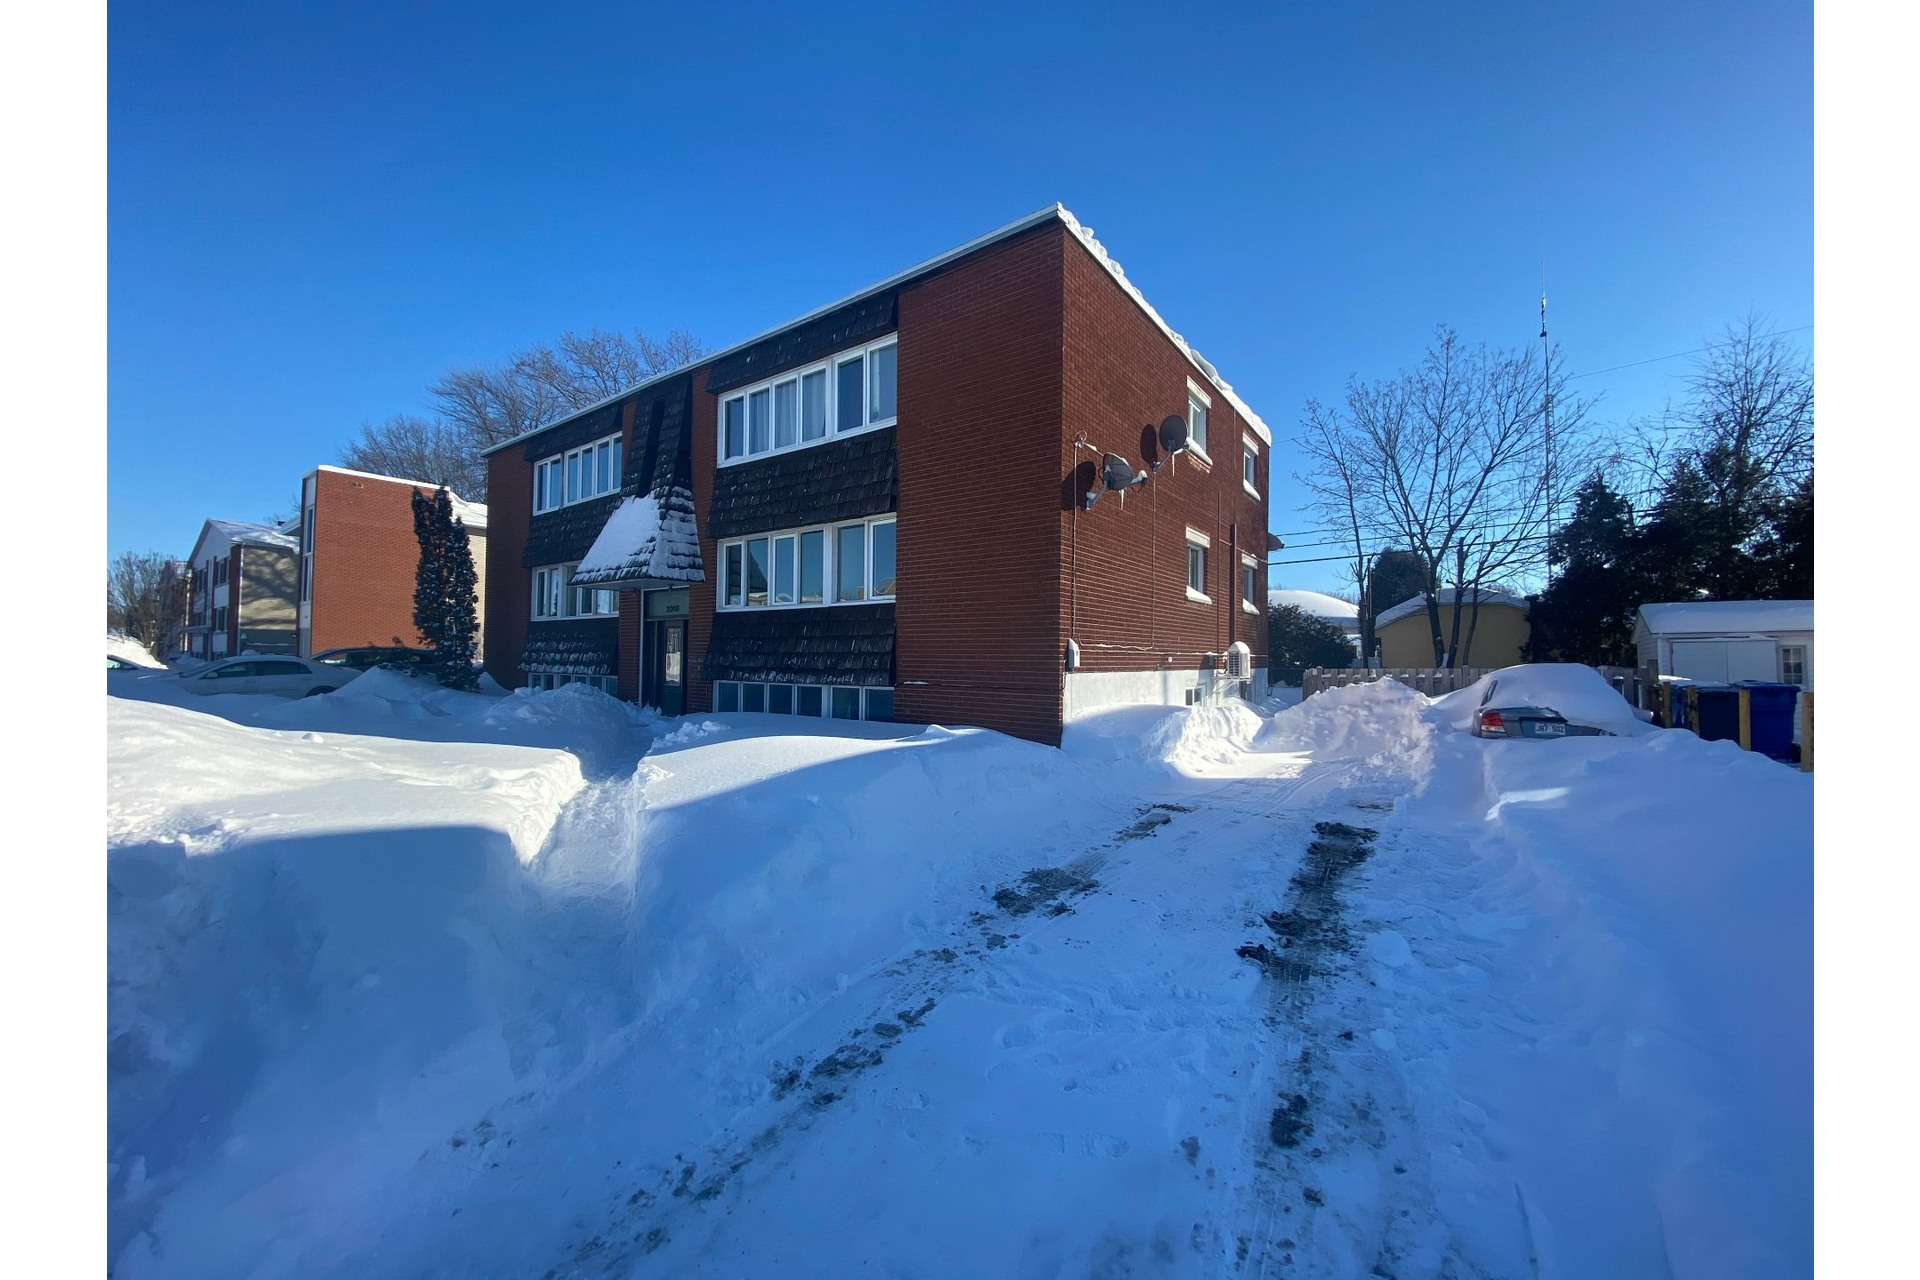 image 2 - Apartment For sale Sorel-Tracy - 5 rooms